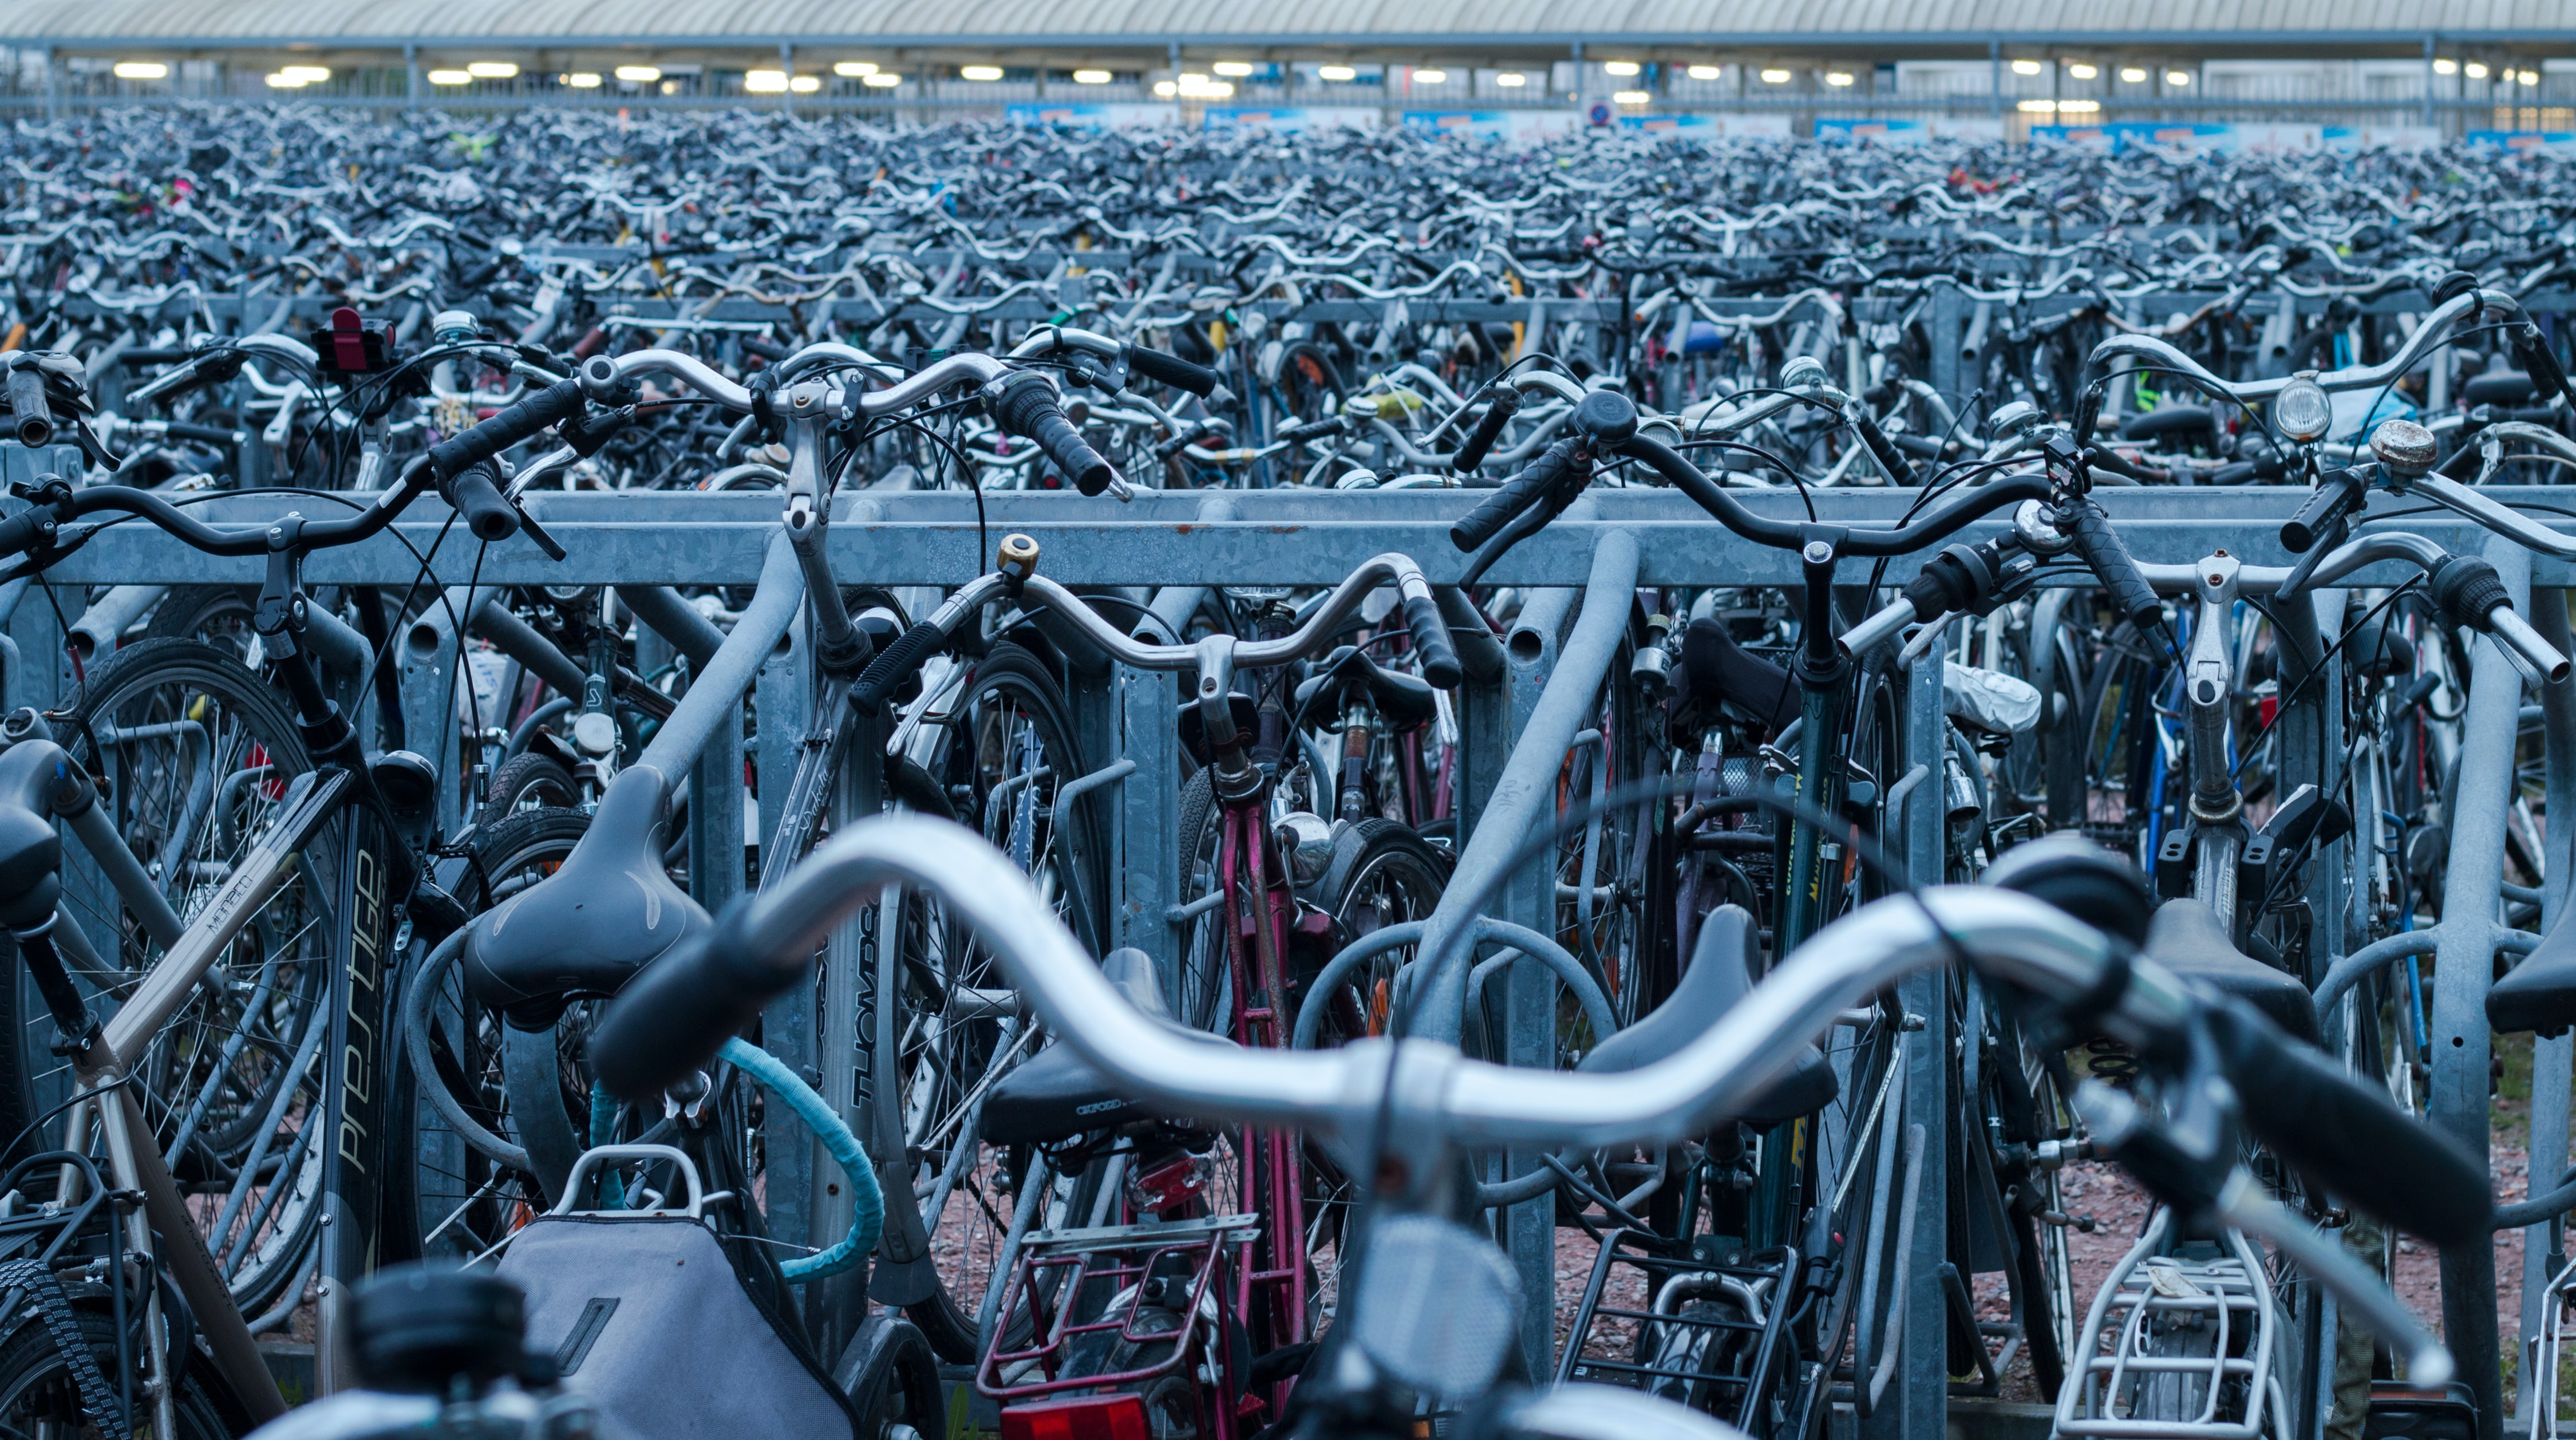 Endless lines of full bike racks with bicycles